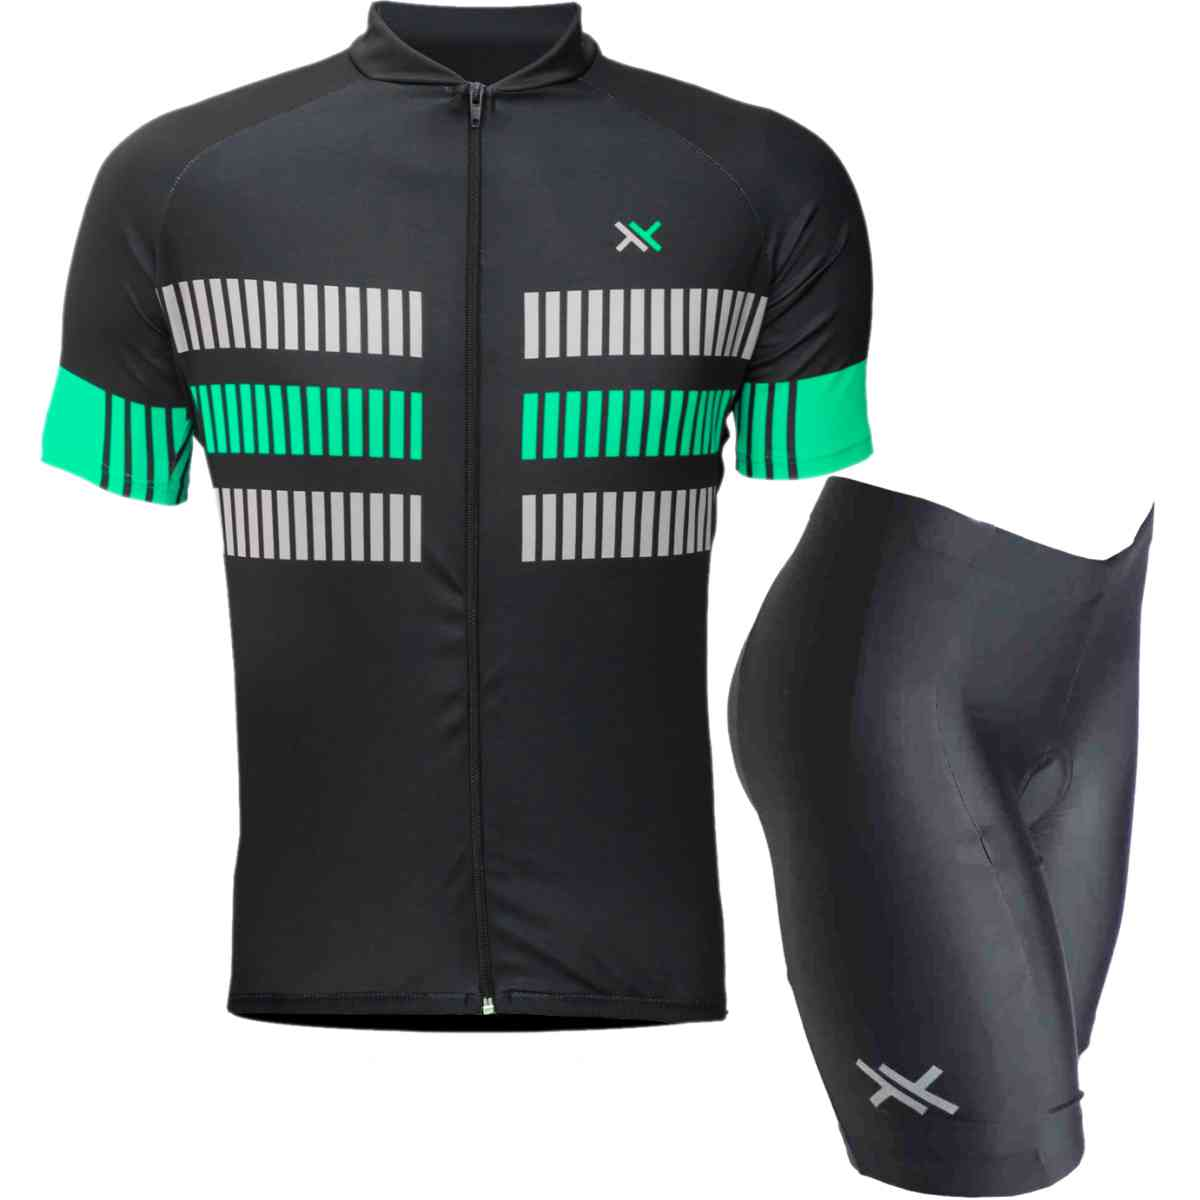 CAMISA MATTOS RACING BIKE TRACK MTB + BERMUDA PRETO CICLISMO D80 MOUNTAIN BIKE